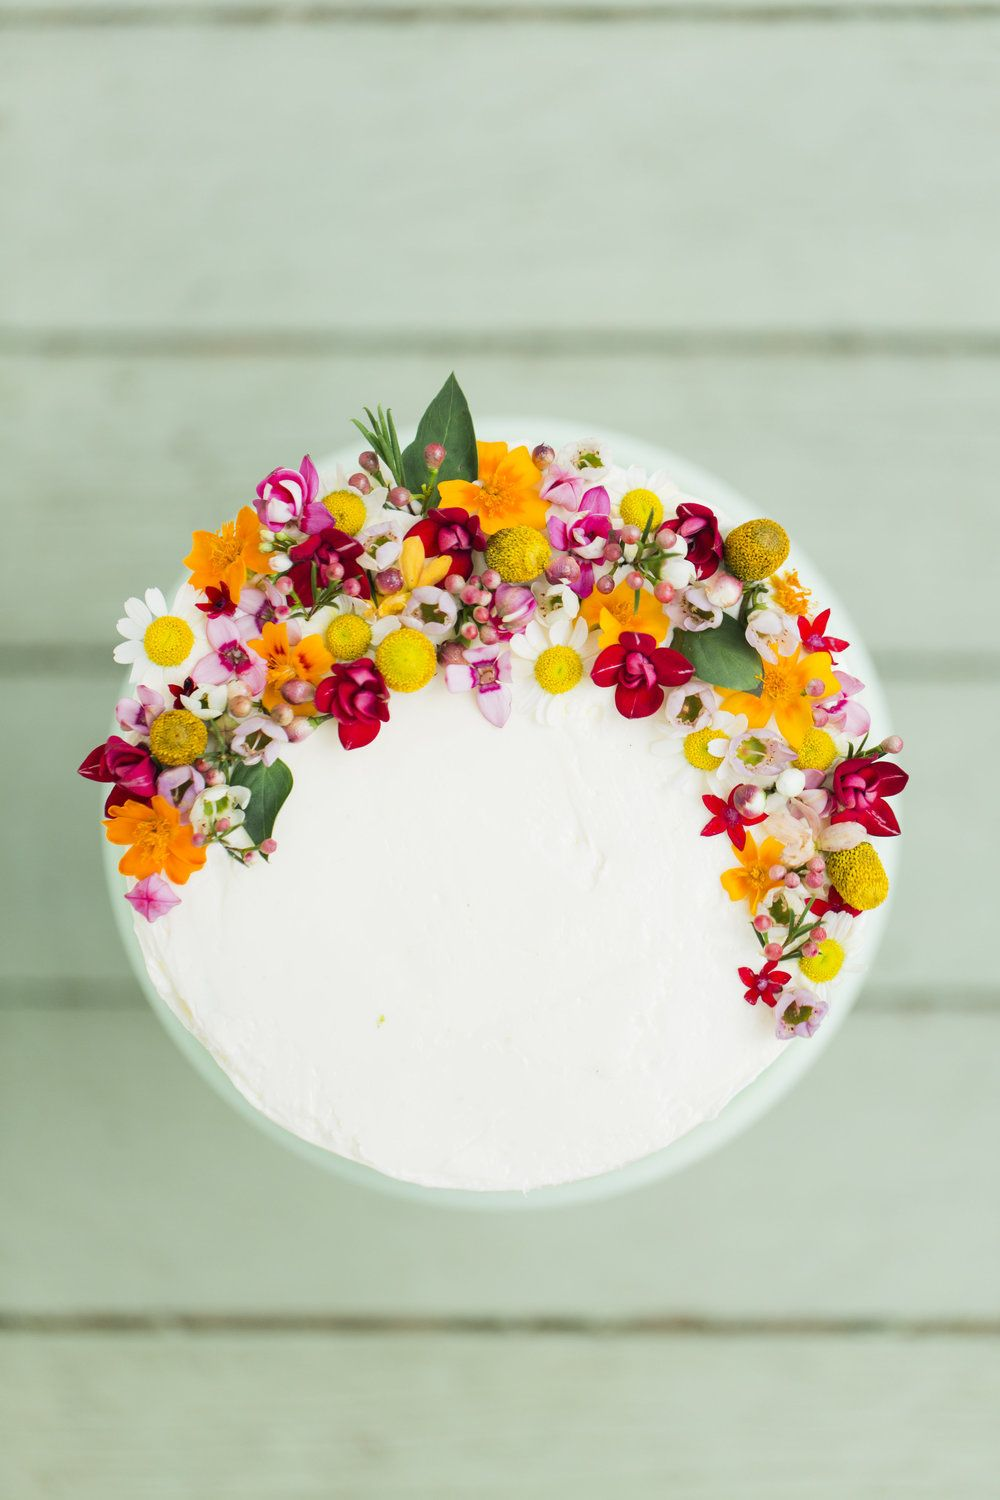 edible flowers for wedding cake decoration floral honey cake inspiration edible flowers 13899